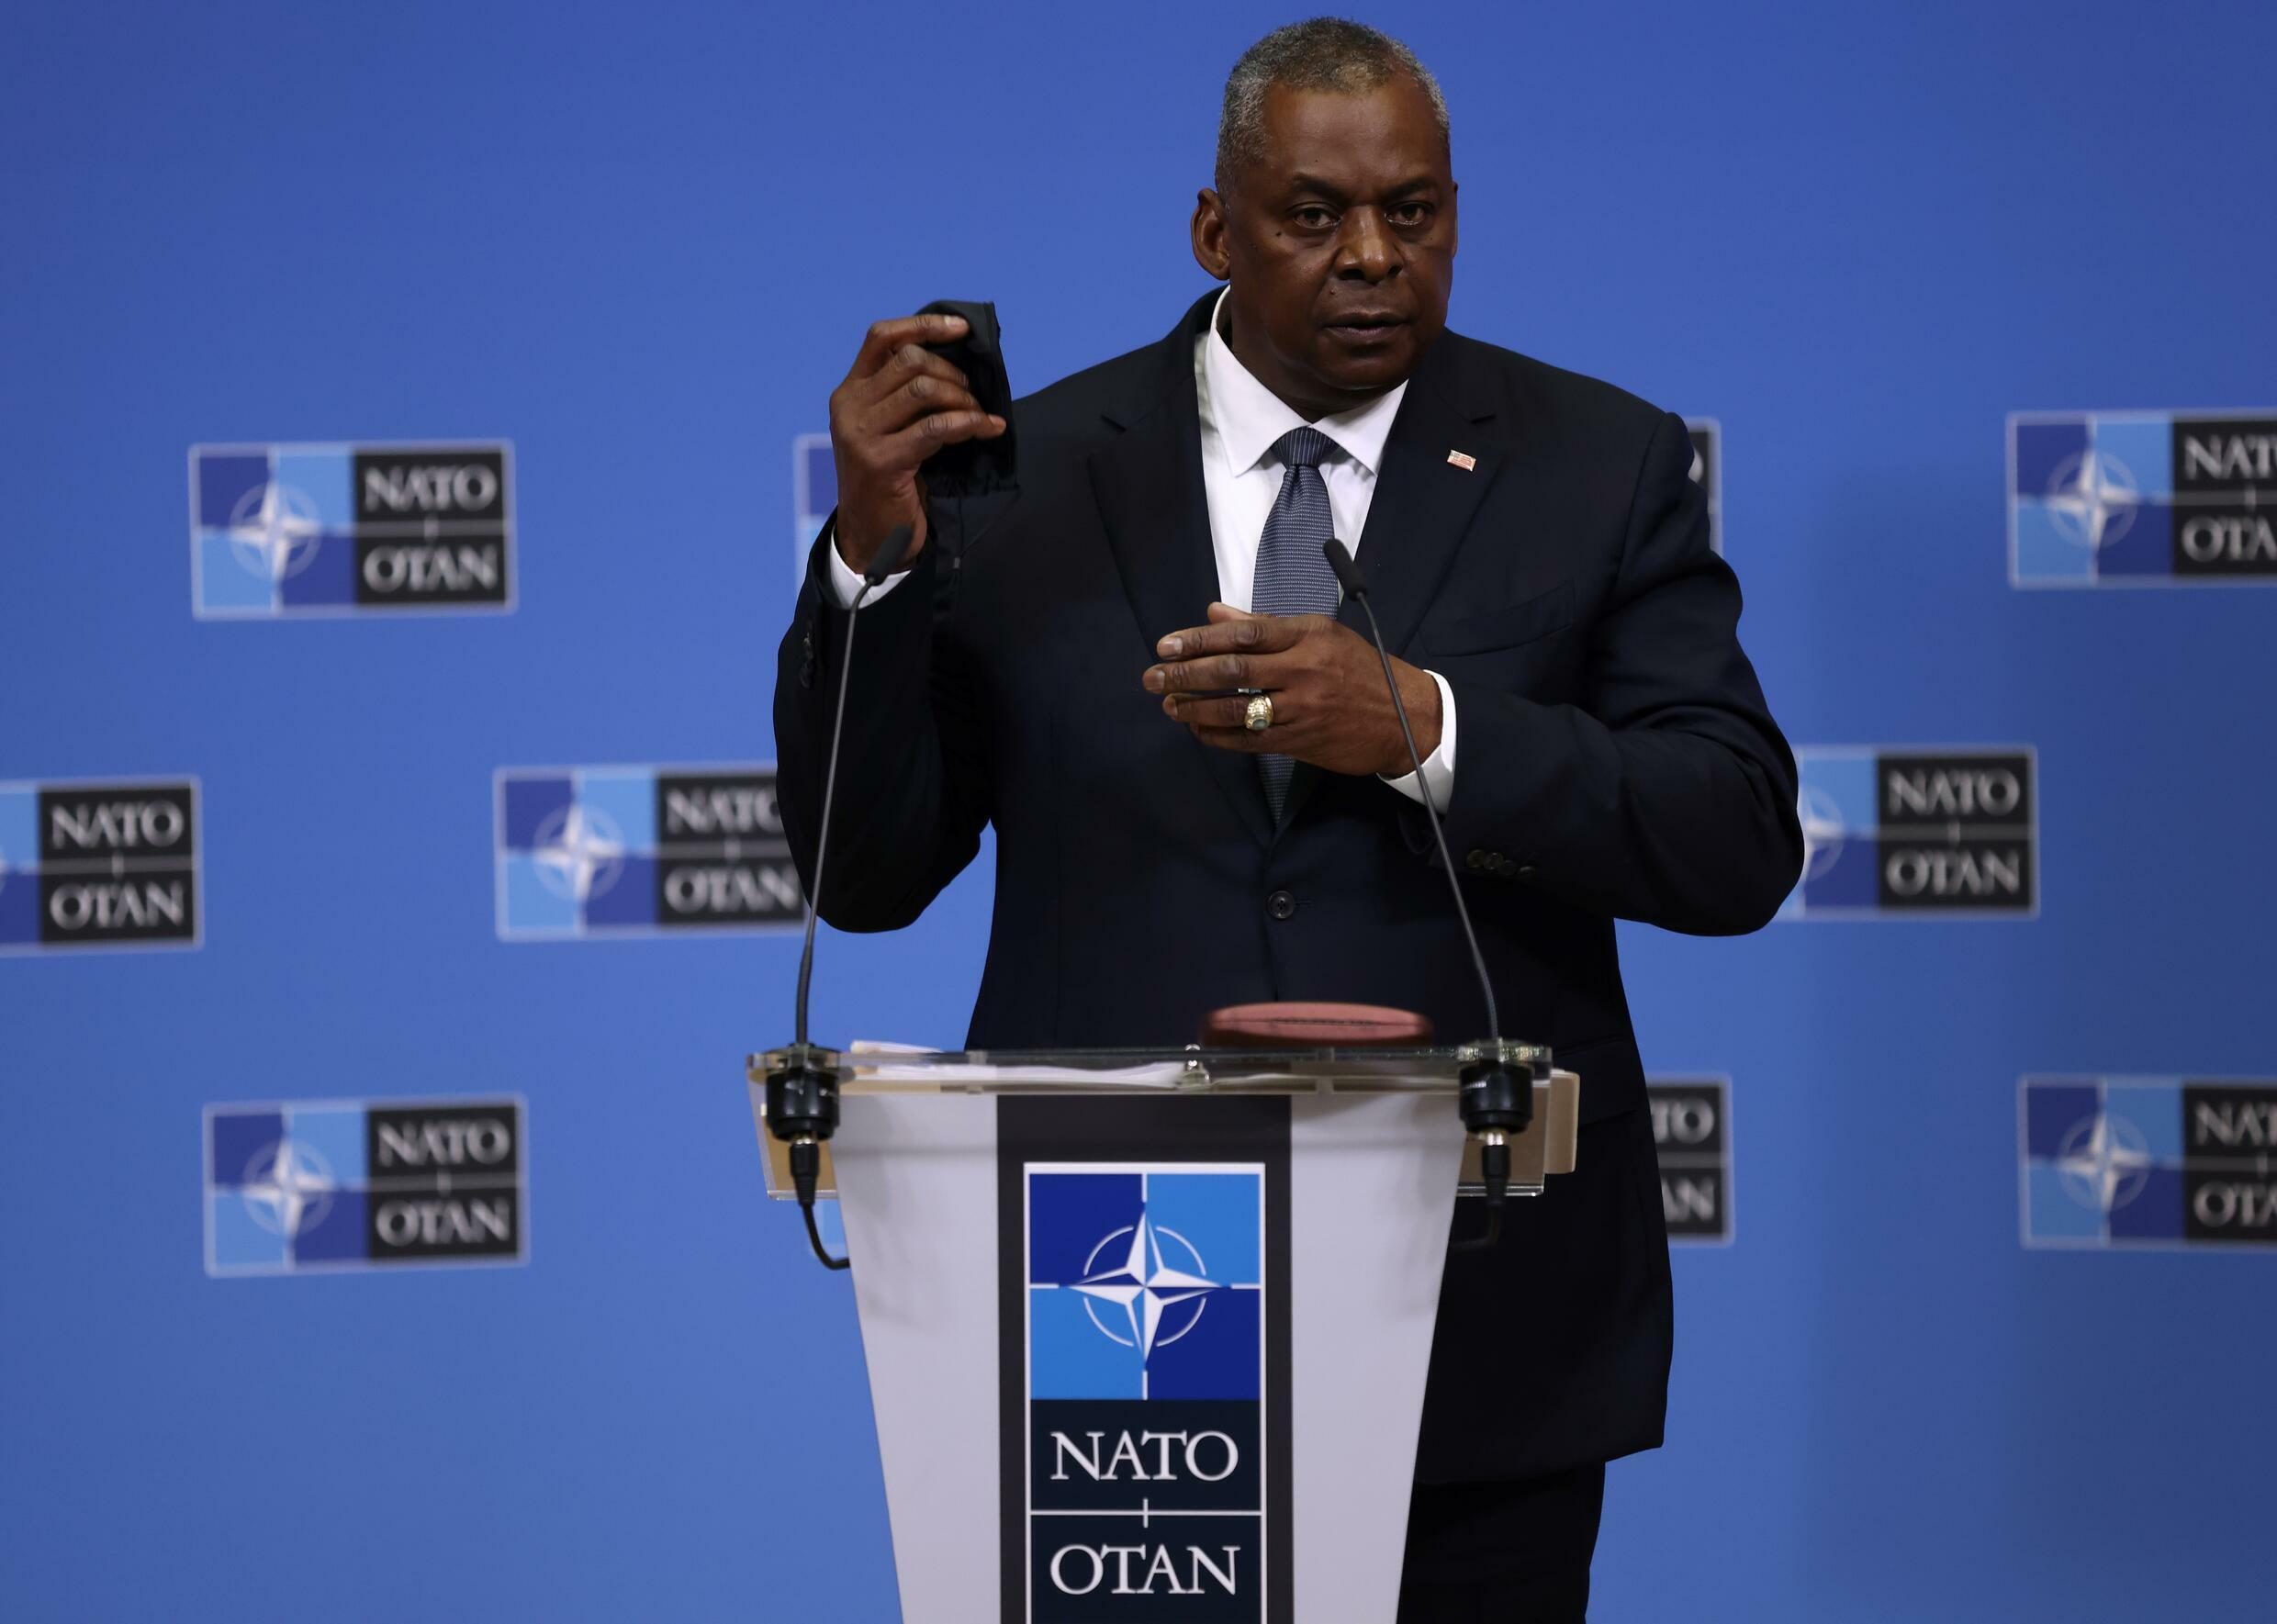 US Secretary of State for Defence Lloyd Austin says the US will continue to support Taiwan's military